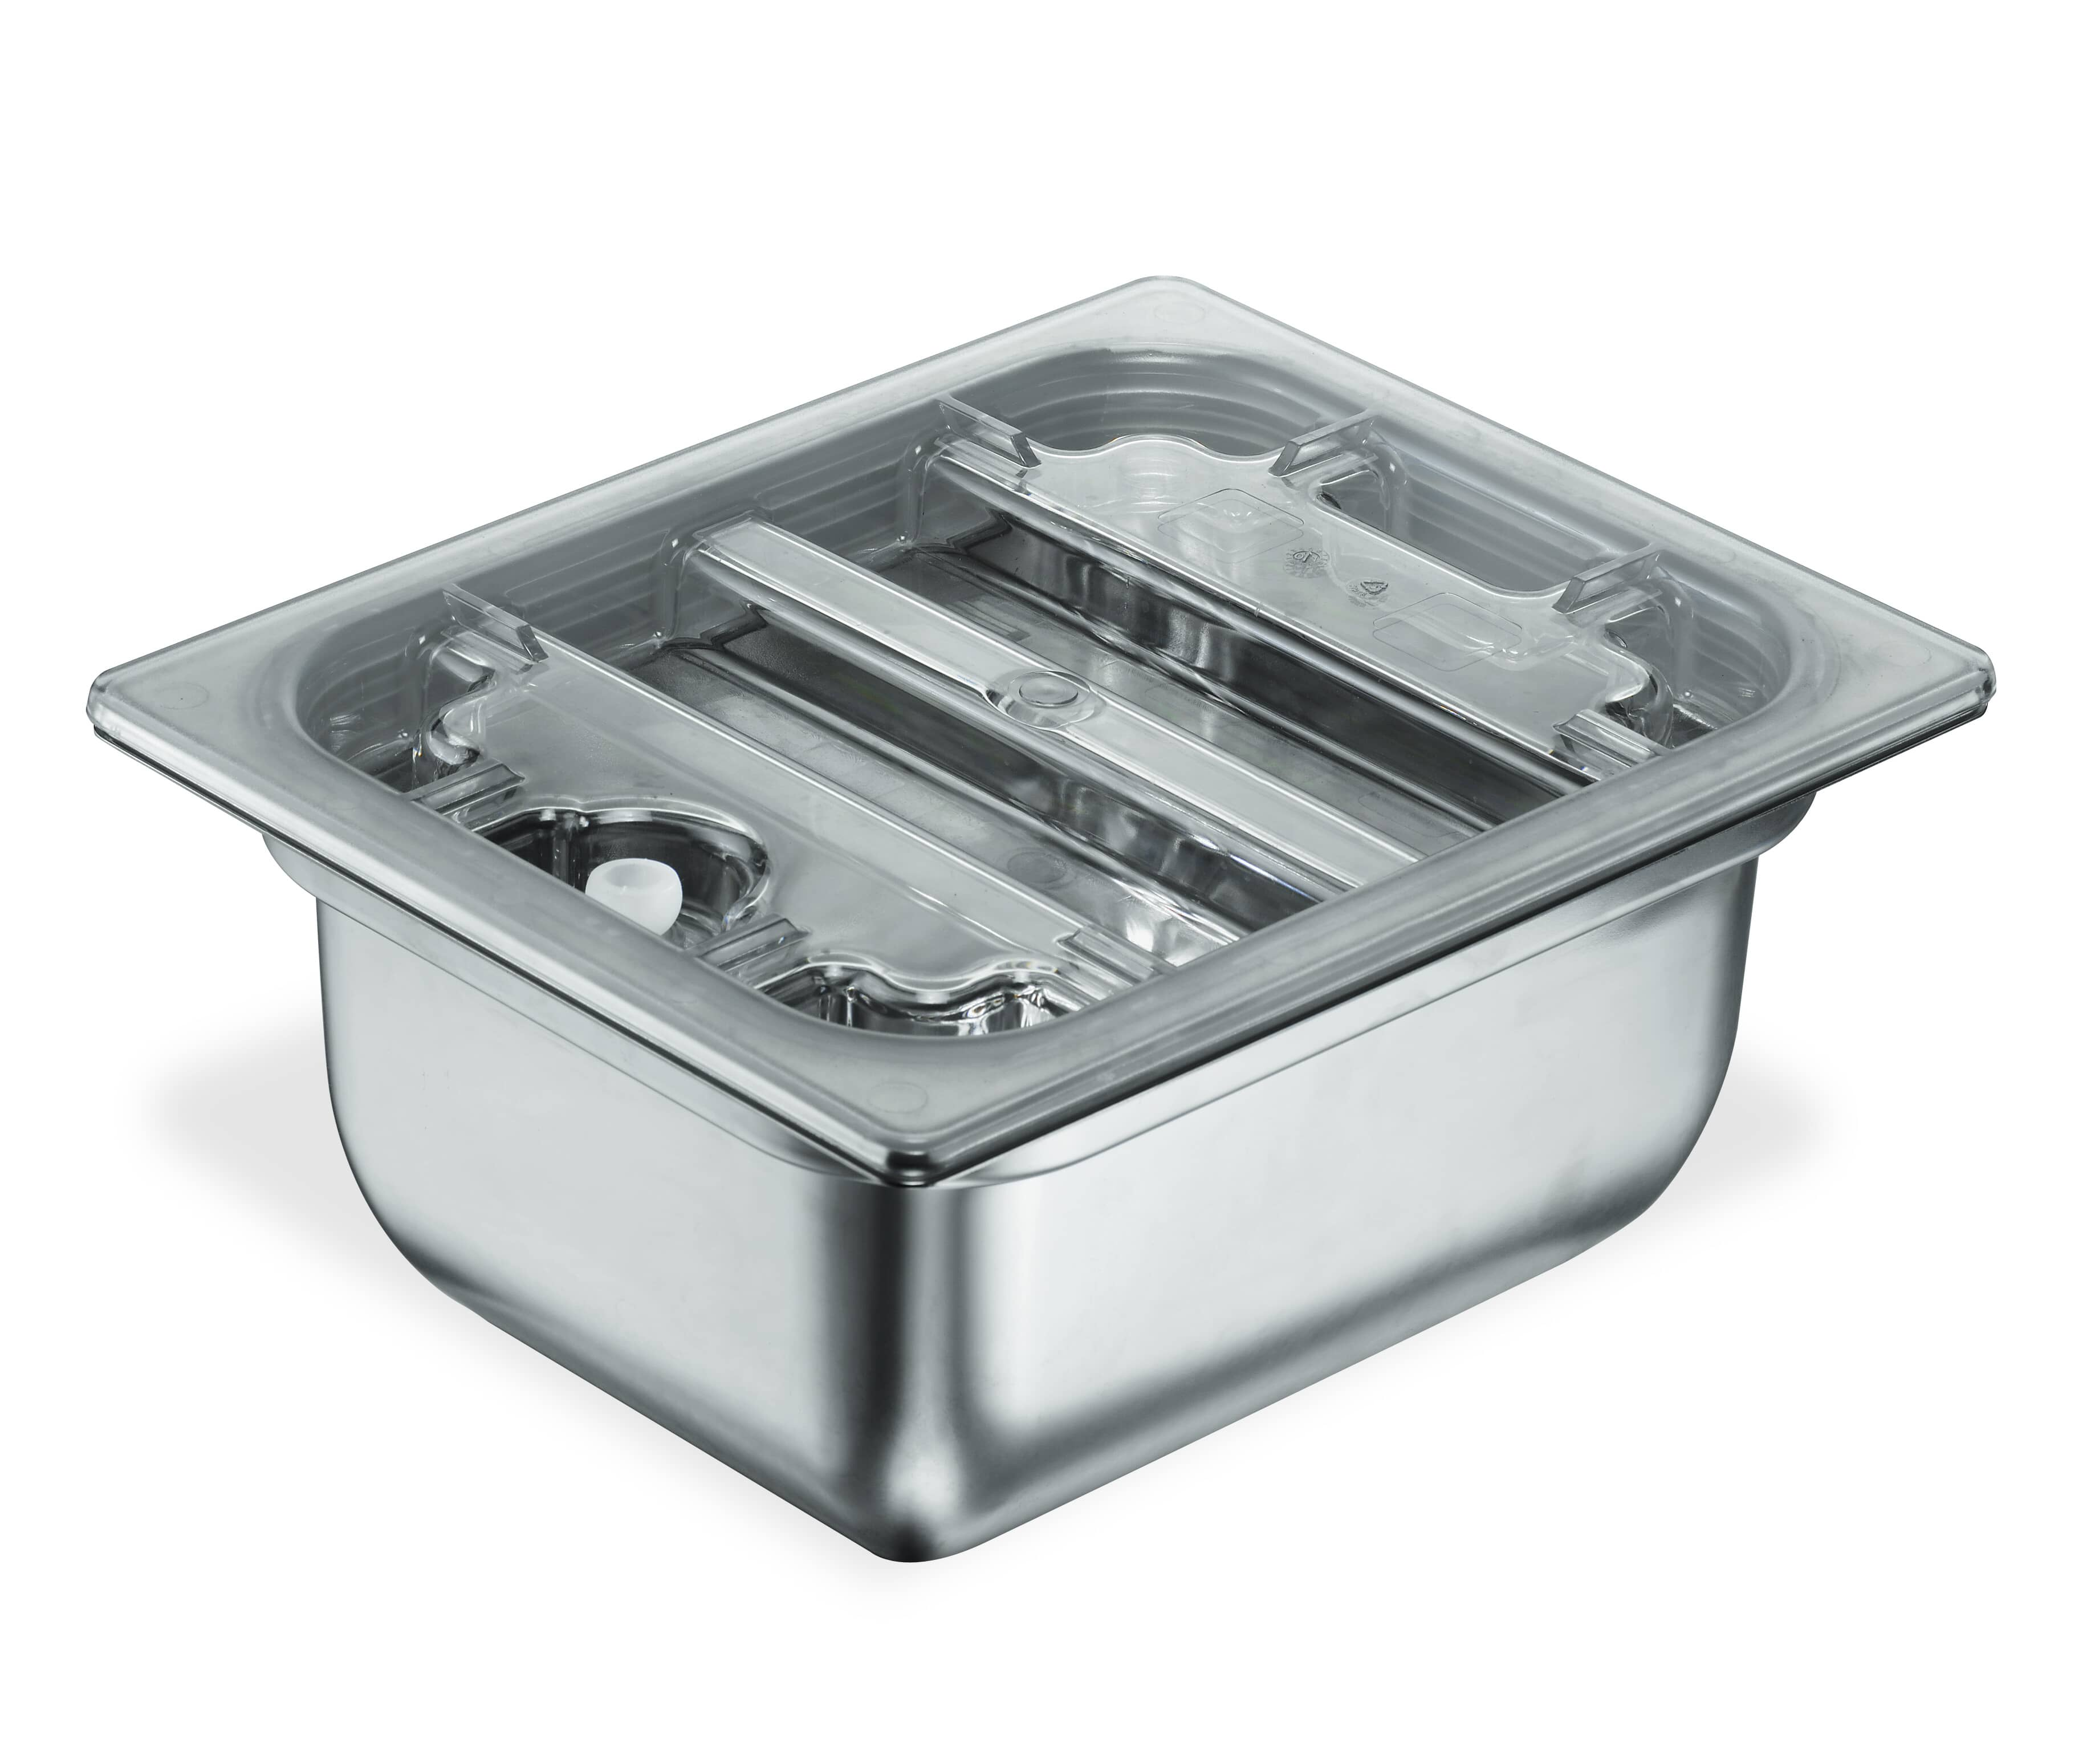 Electrolux Professional0S1533BACINELLA, INOX GN1/1, H 100 MM